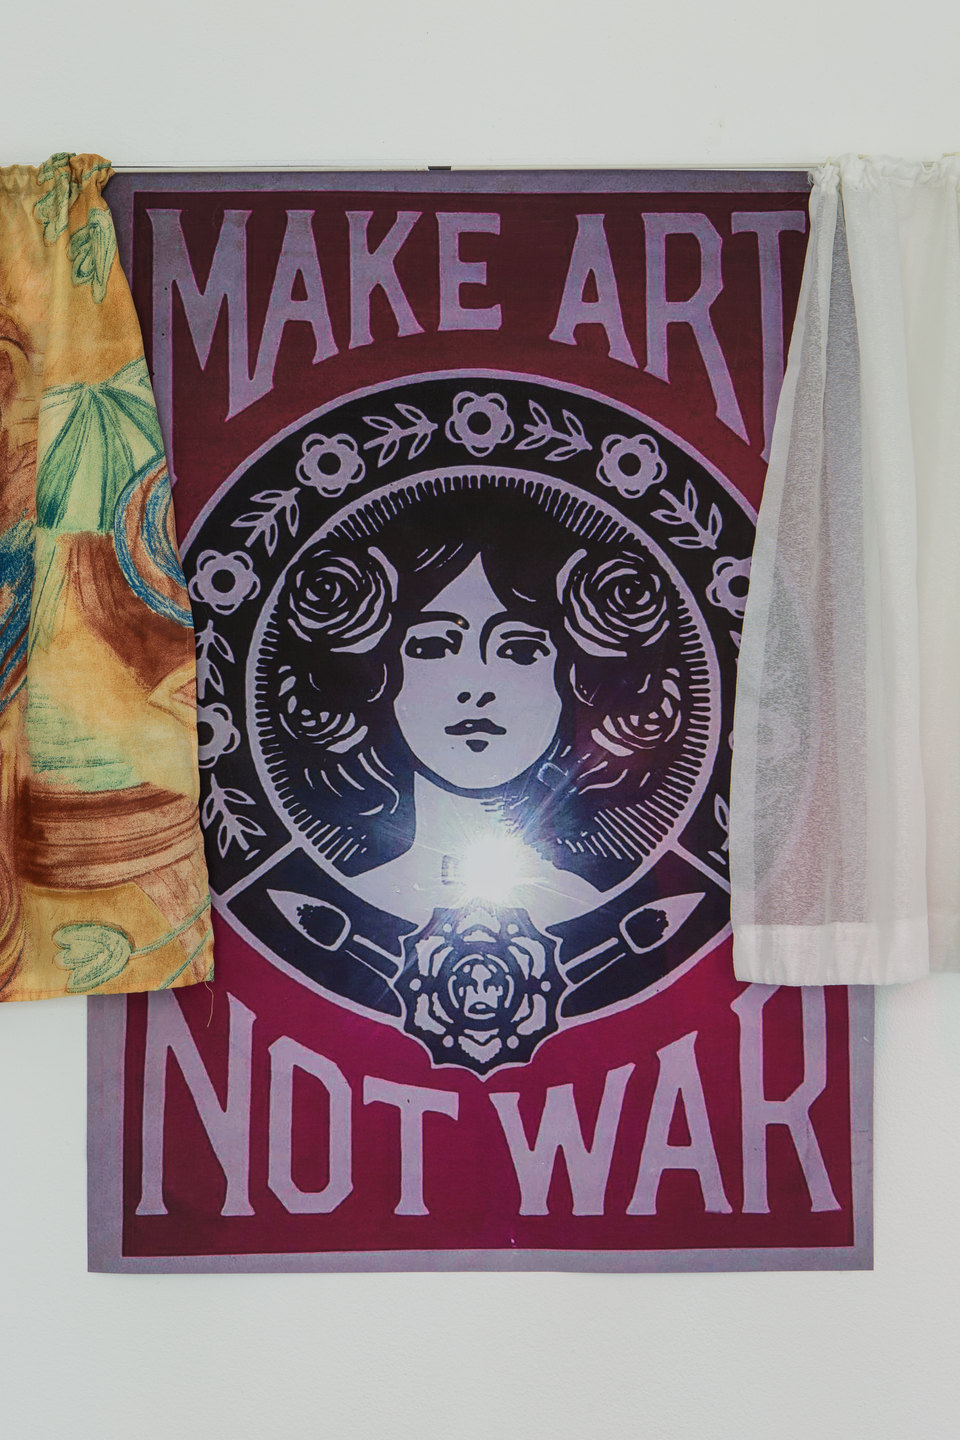 Nancy Halt 'Make art not war, one to four' (Detail), 2018, No, No, No, No, 2018 Cell Project Space